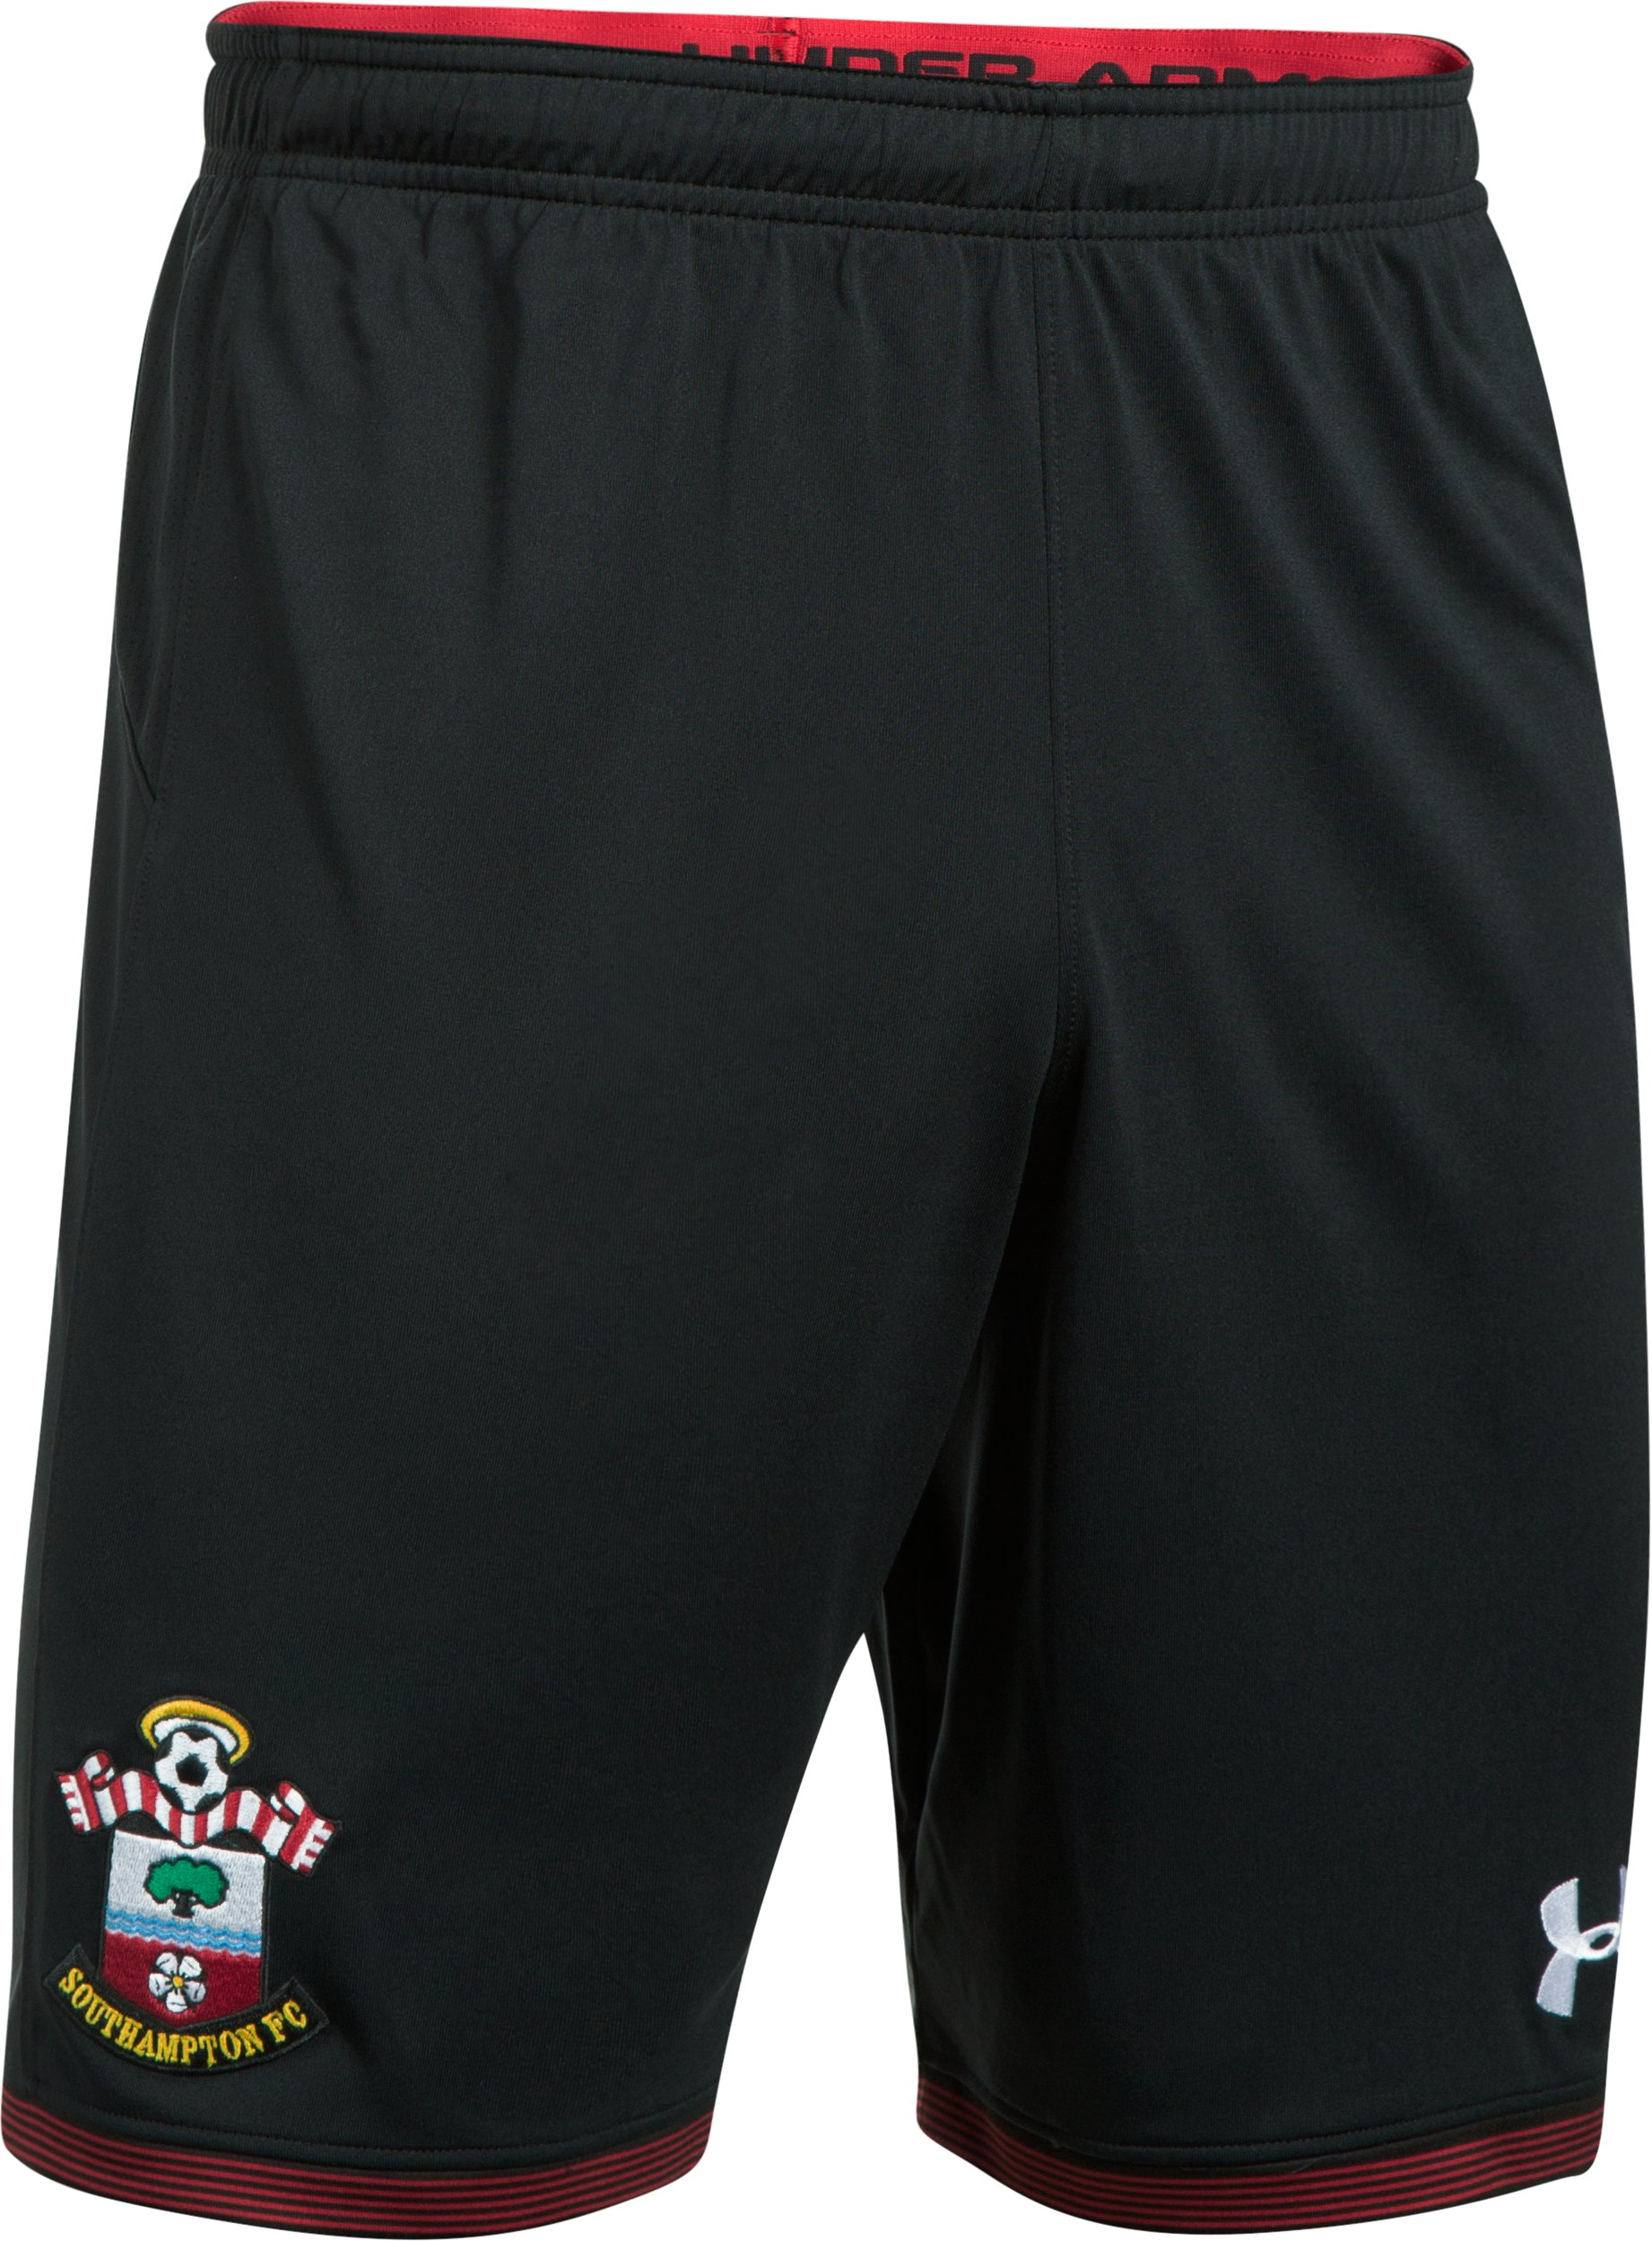 Men's Southampton Rep Shorts, Black ,